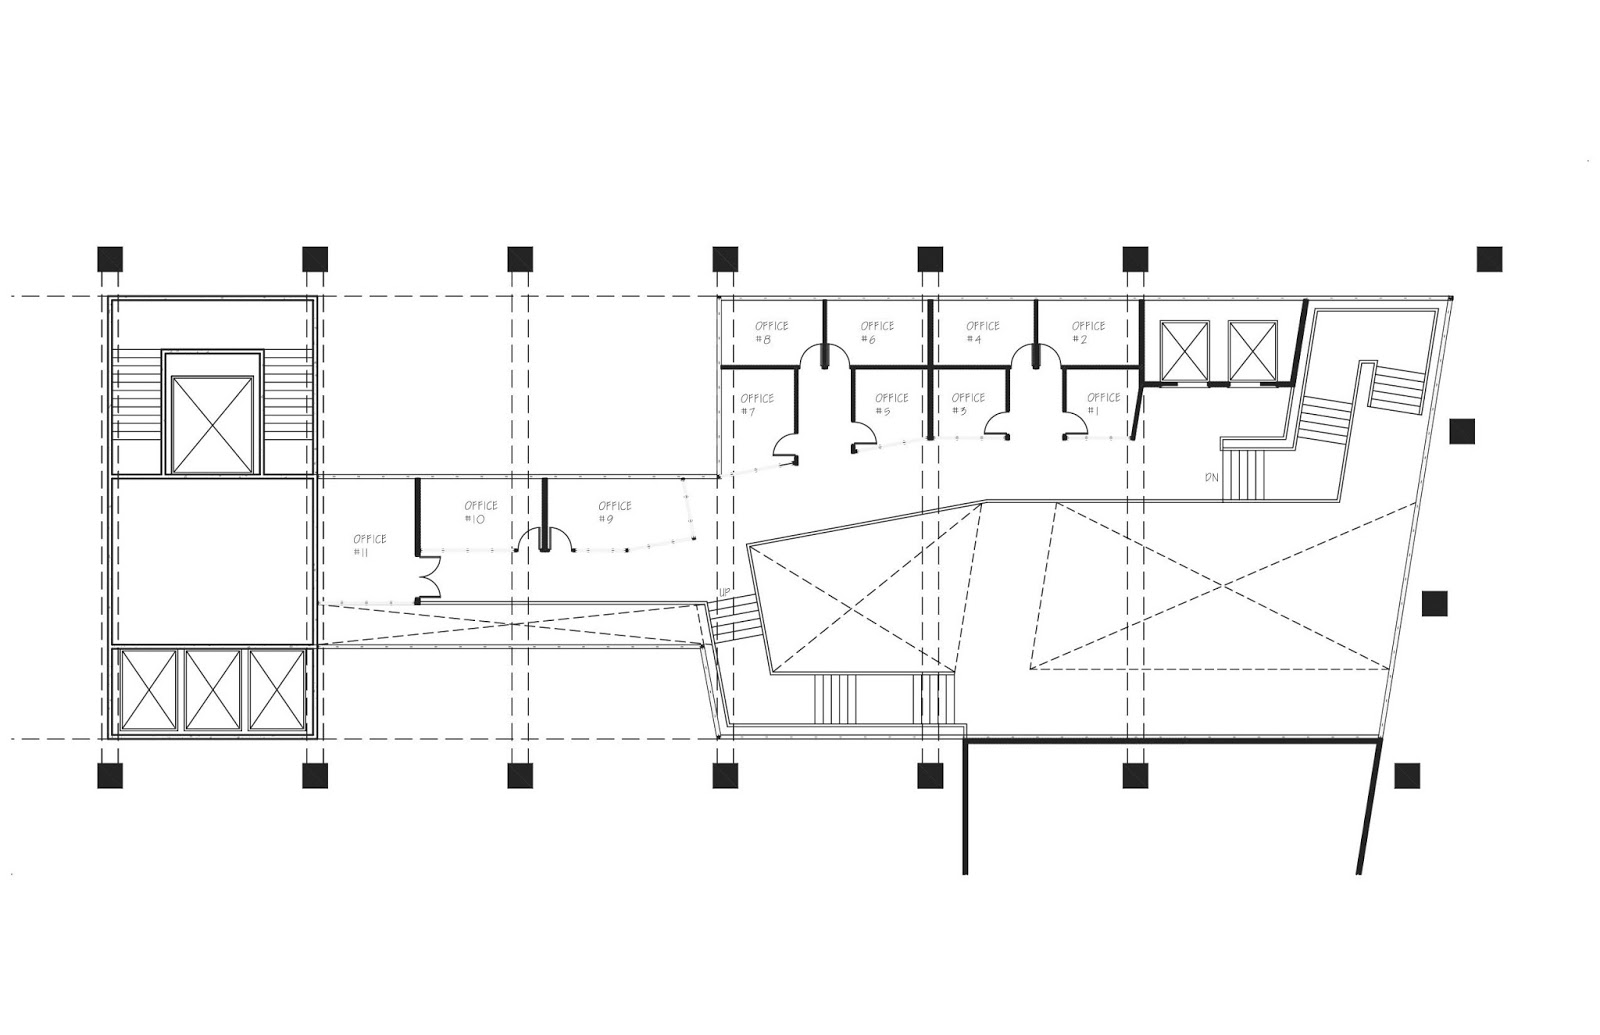 Stedroy brand arch3610 fall2015 process 10 plans for Mezzanine plan